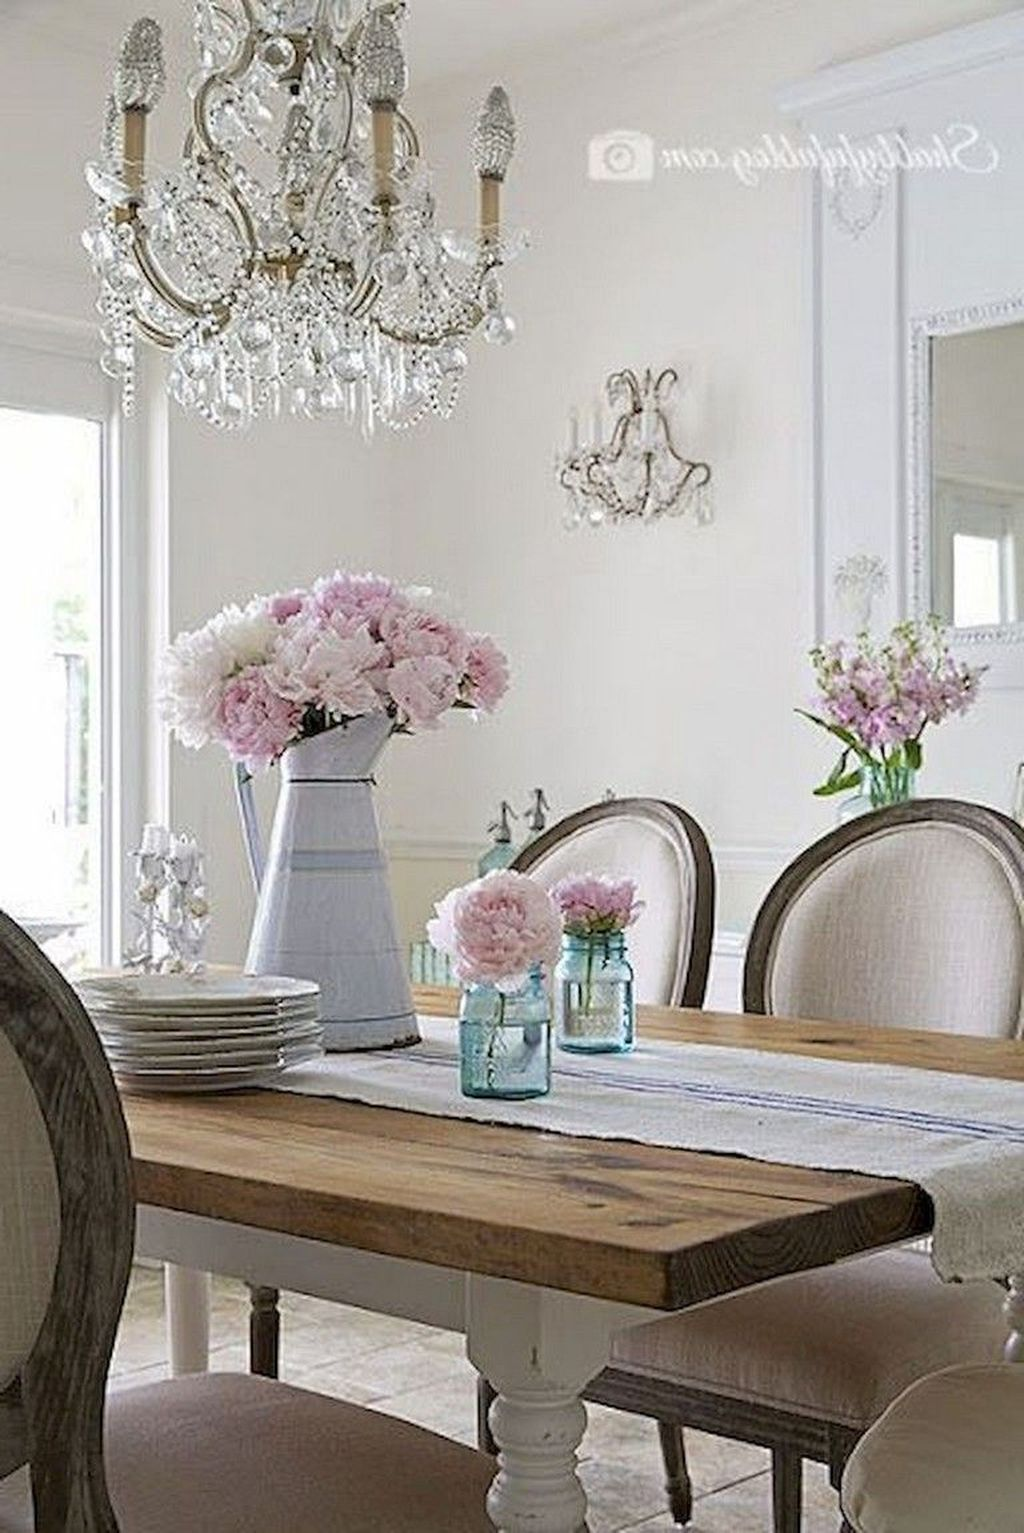 Stunning Romantic Dining Room Decor Ideas Best For Valentines Day 12